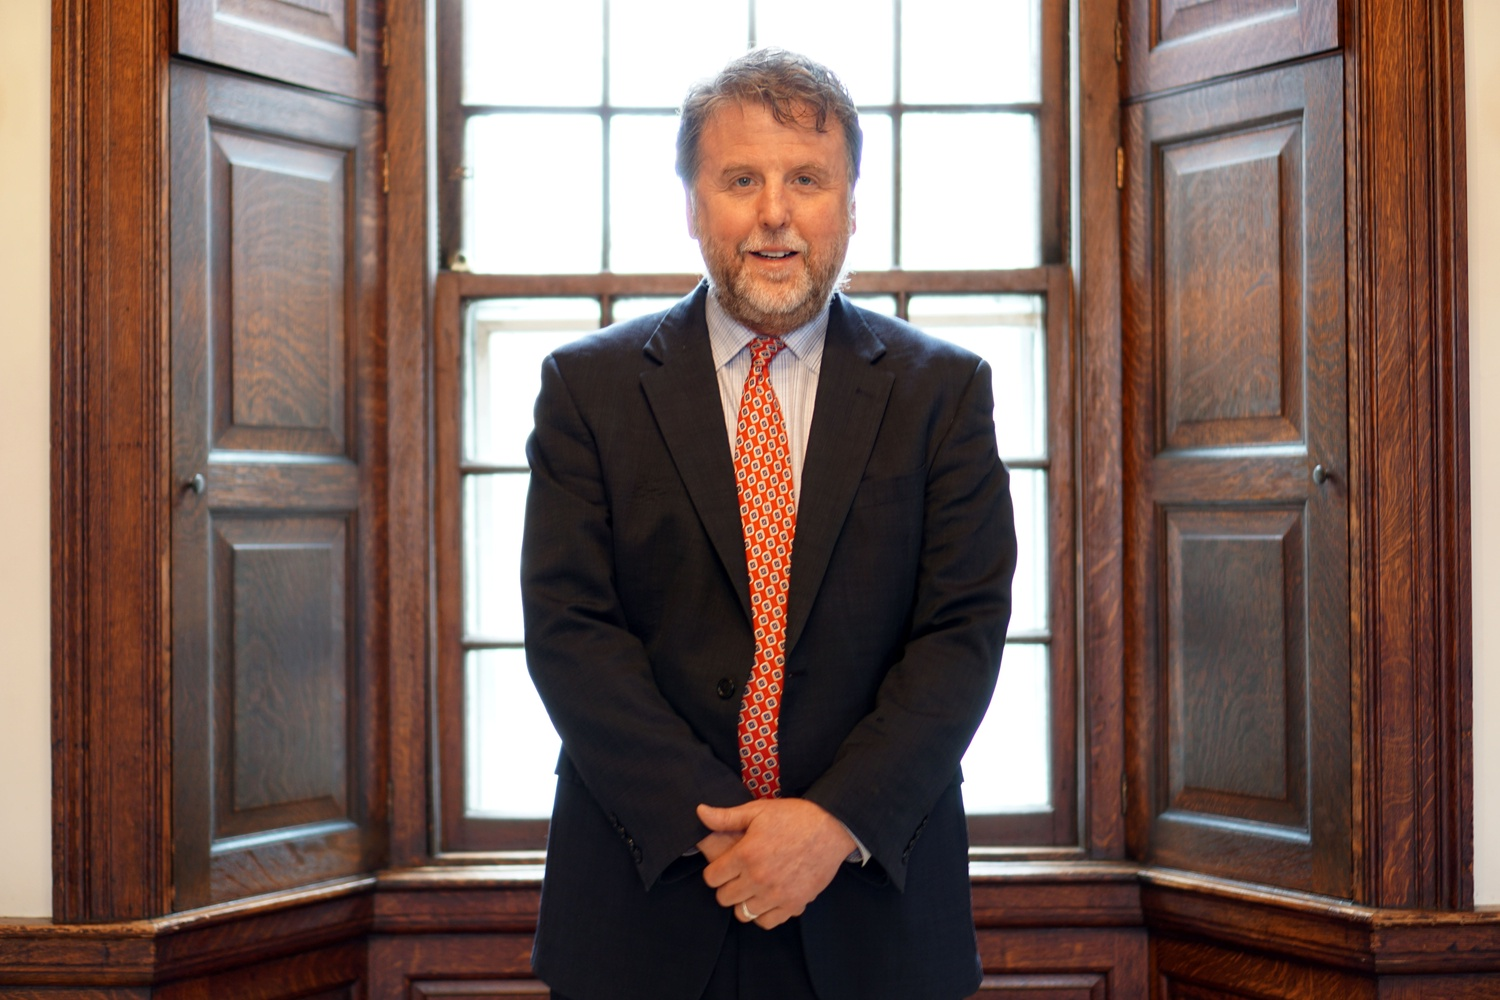 Gene Corbin, the current Assistant Dean of Harvard College for Public Service, will step down at the end of the semester.